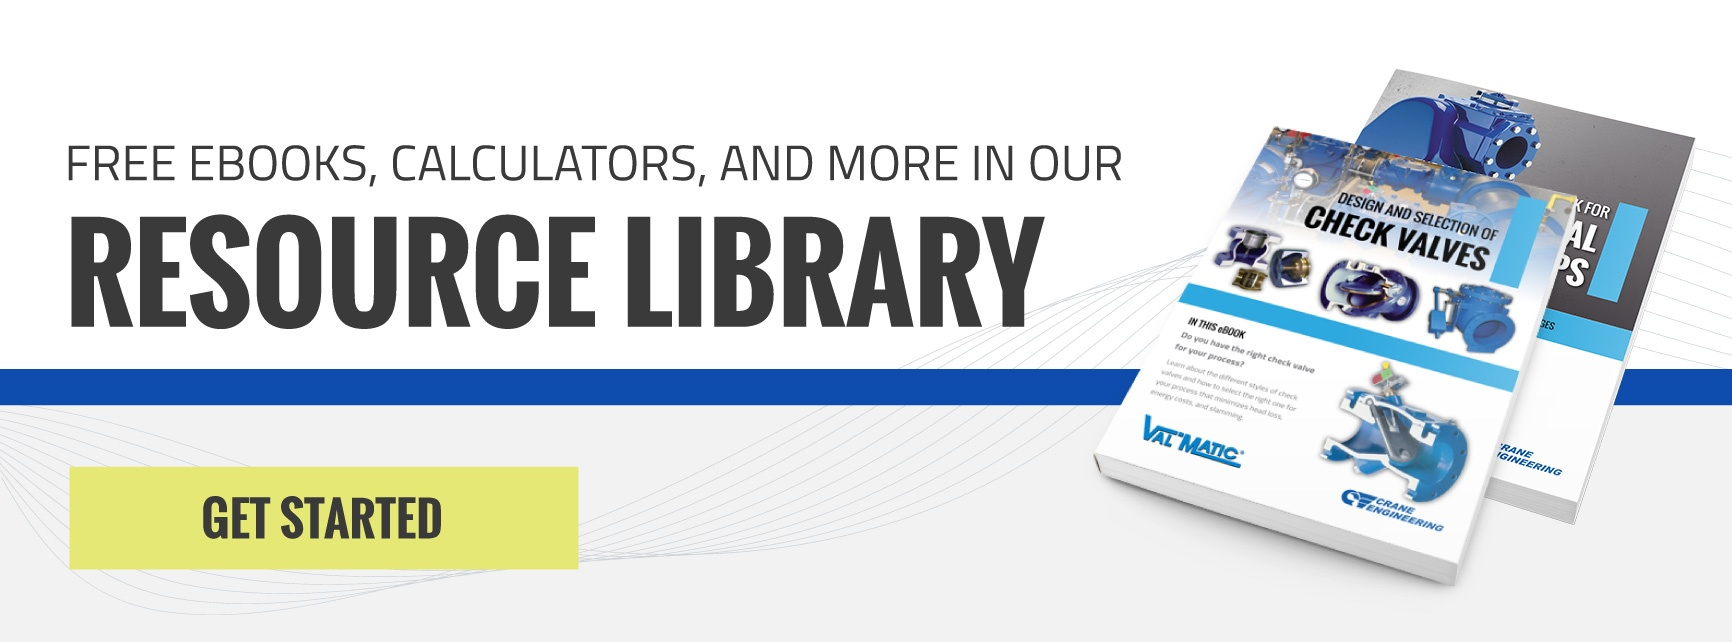 eBooks, Calculators, and More in our Resource Library